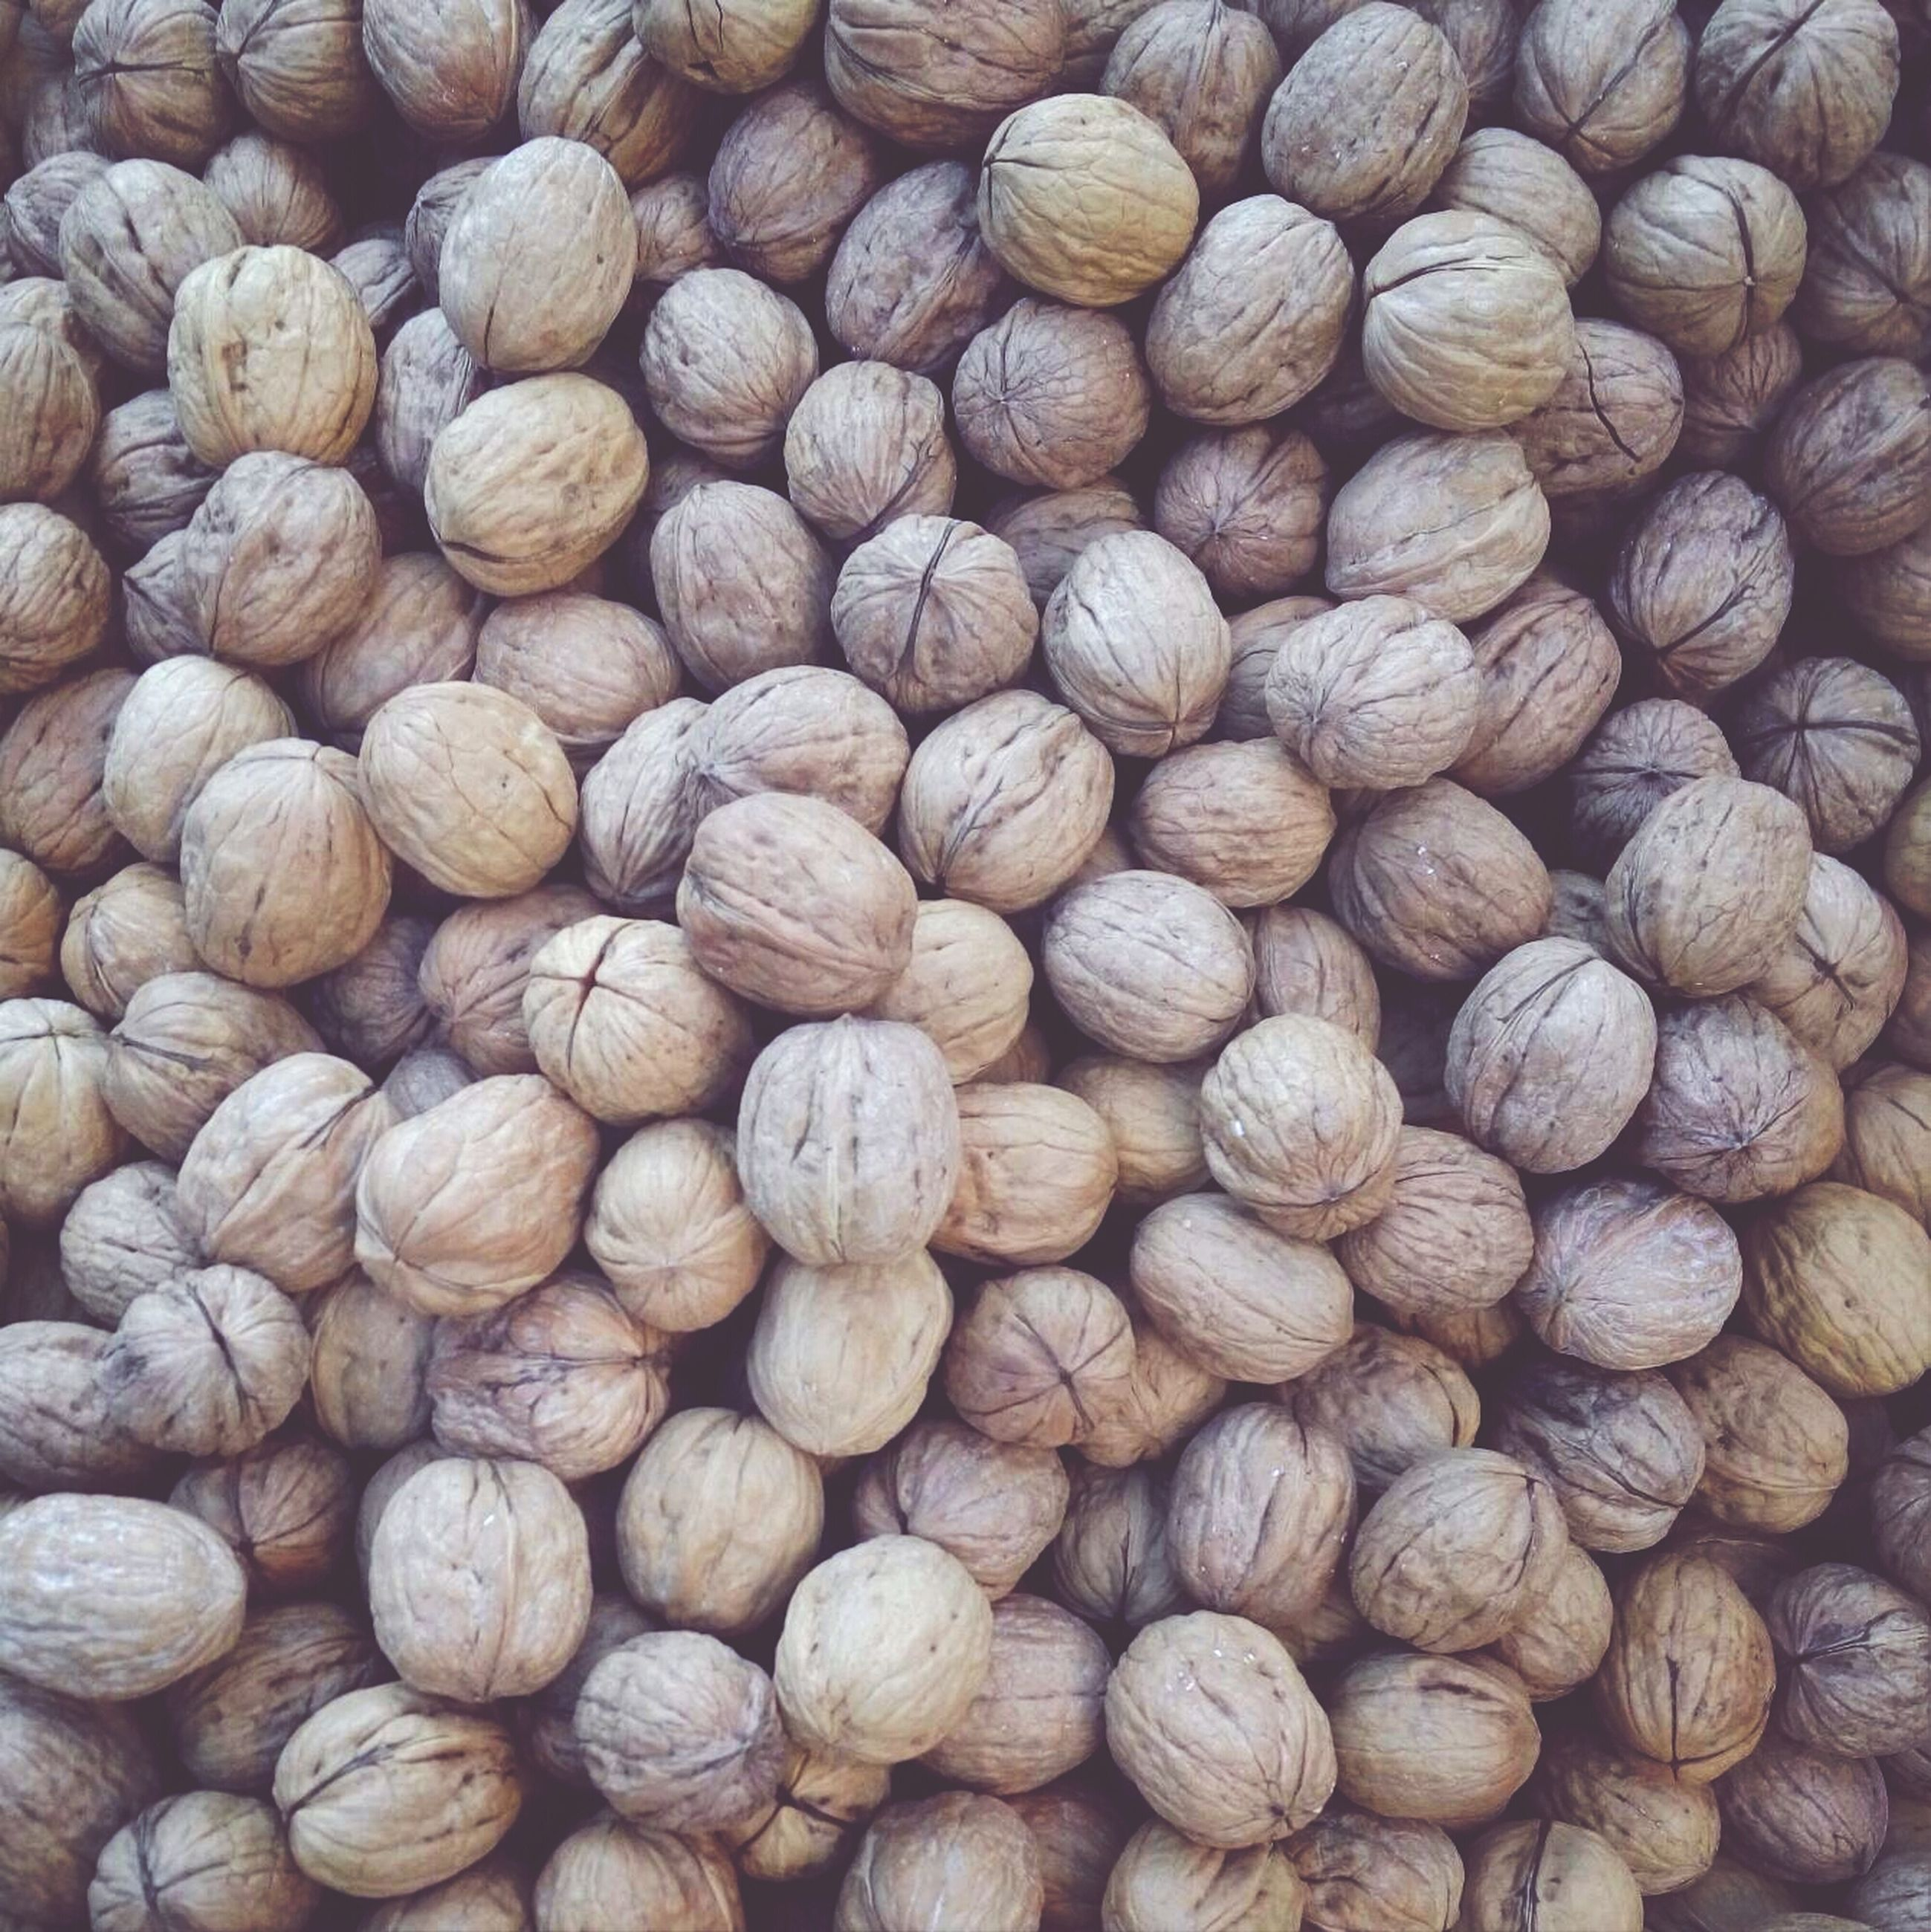 full frame, backgrounds, food and drink, abundance, large group of objects, food, freshness, brown, still life, healthy eating, close-up, high angle view, nut - food, indoors, stack, no people, directly above, heap, textured, pattern